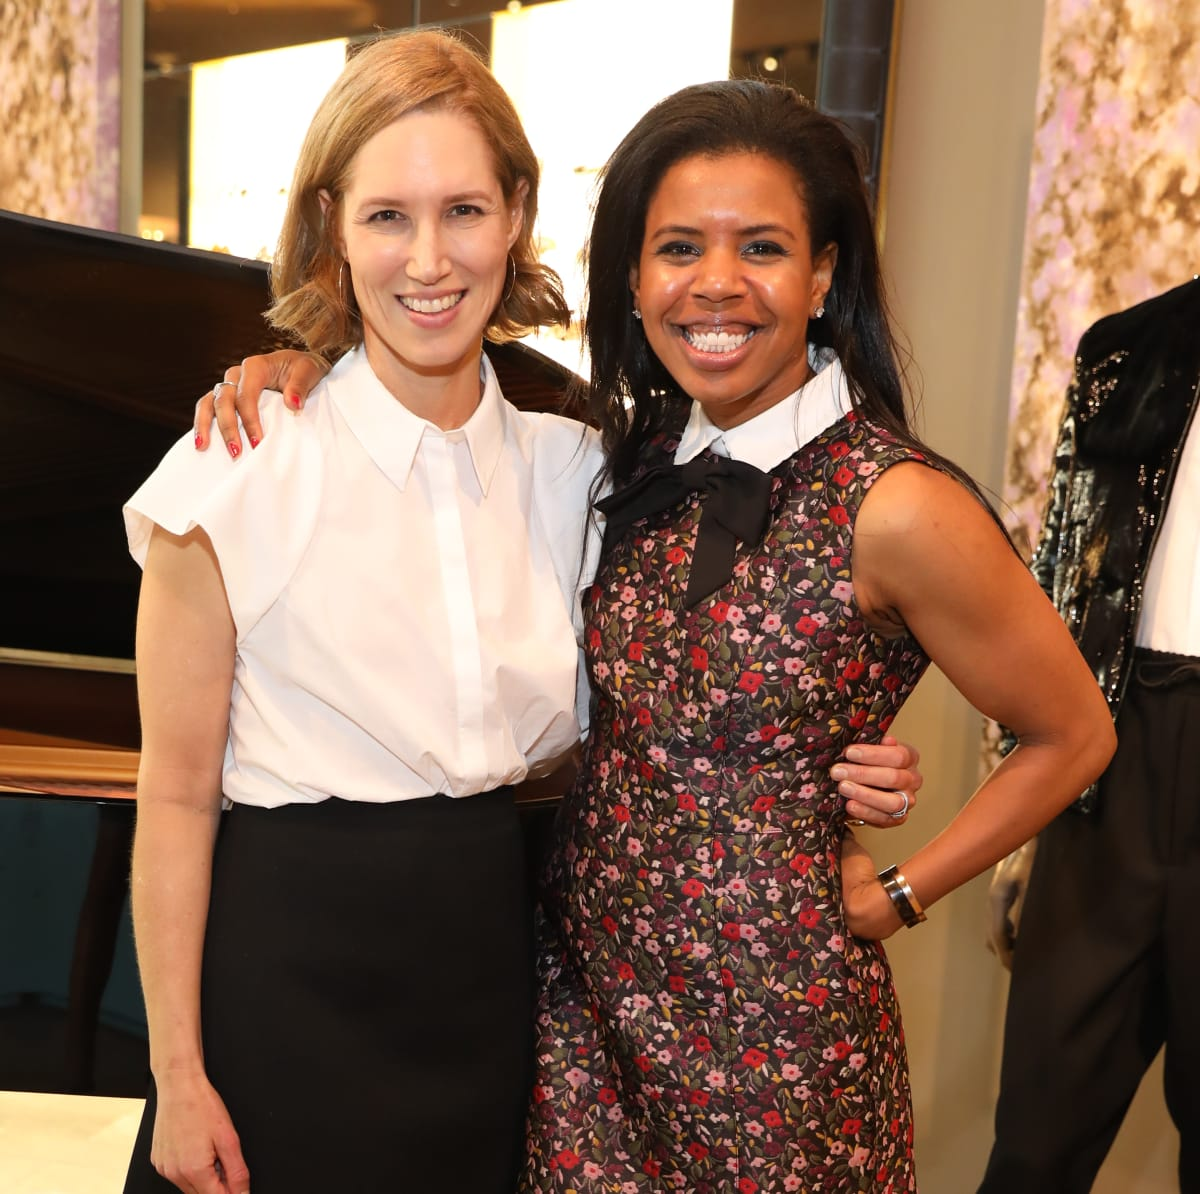 Carolyn Dorros, Claire Cormier Thielke at Houston Grand Opera party at The Webster